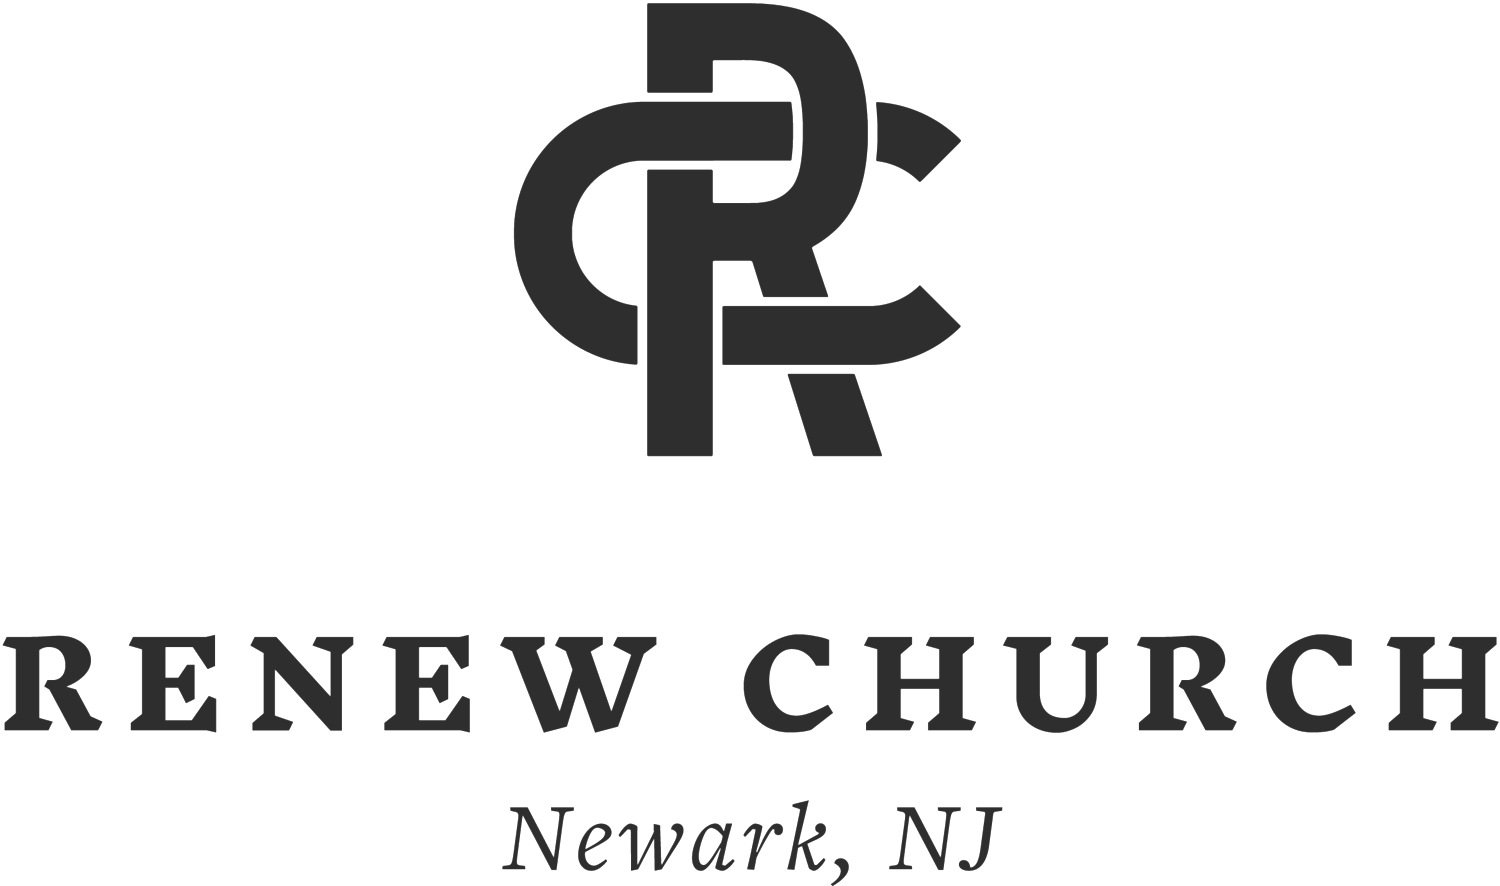 Renew Church NJ